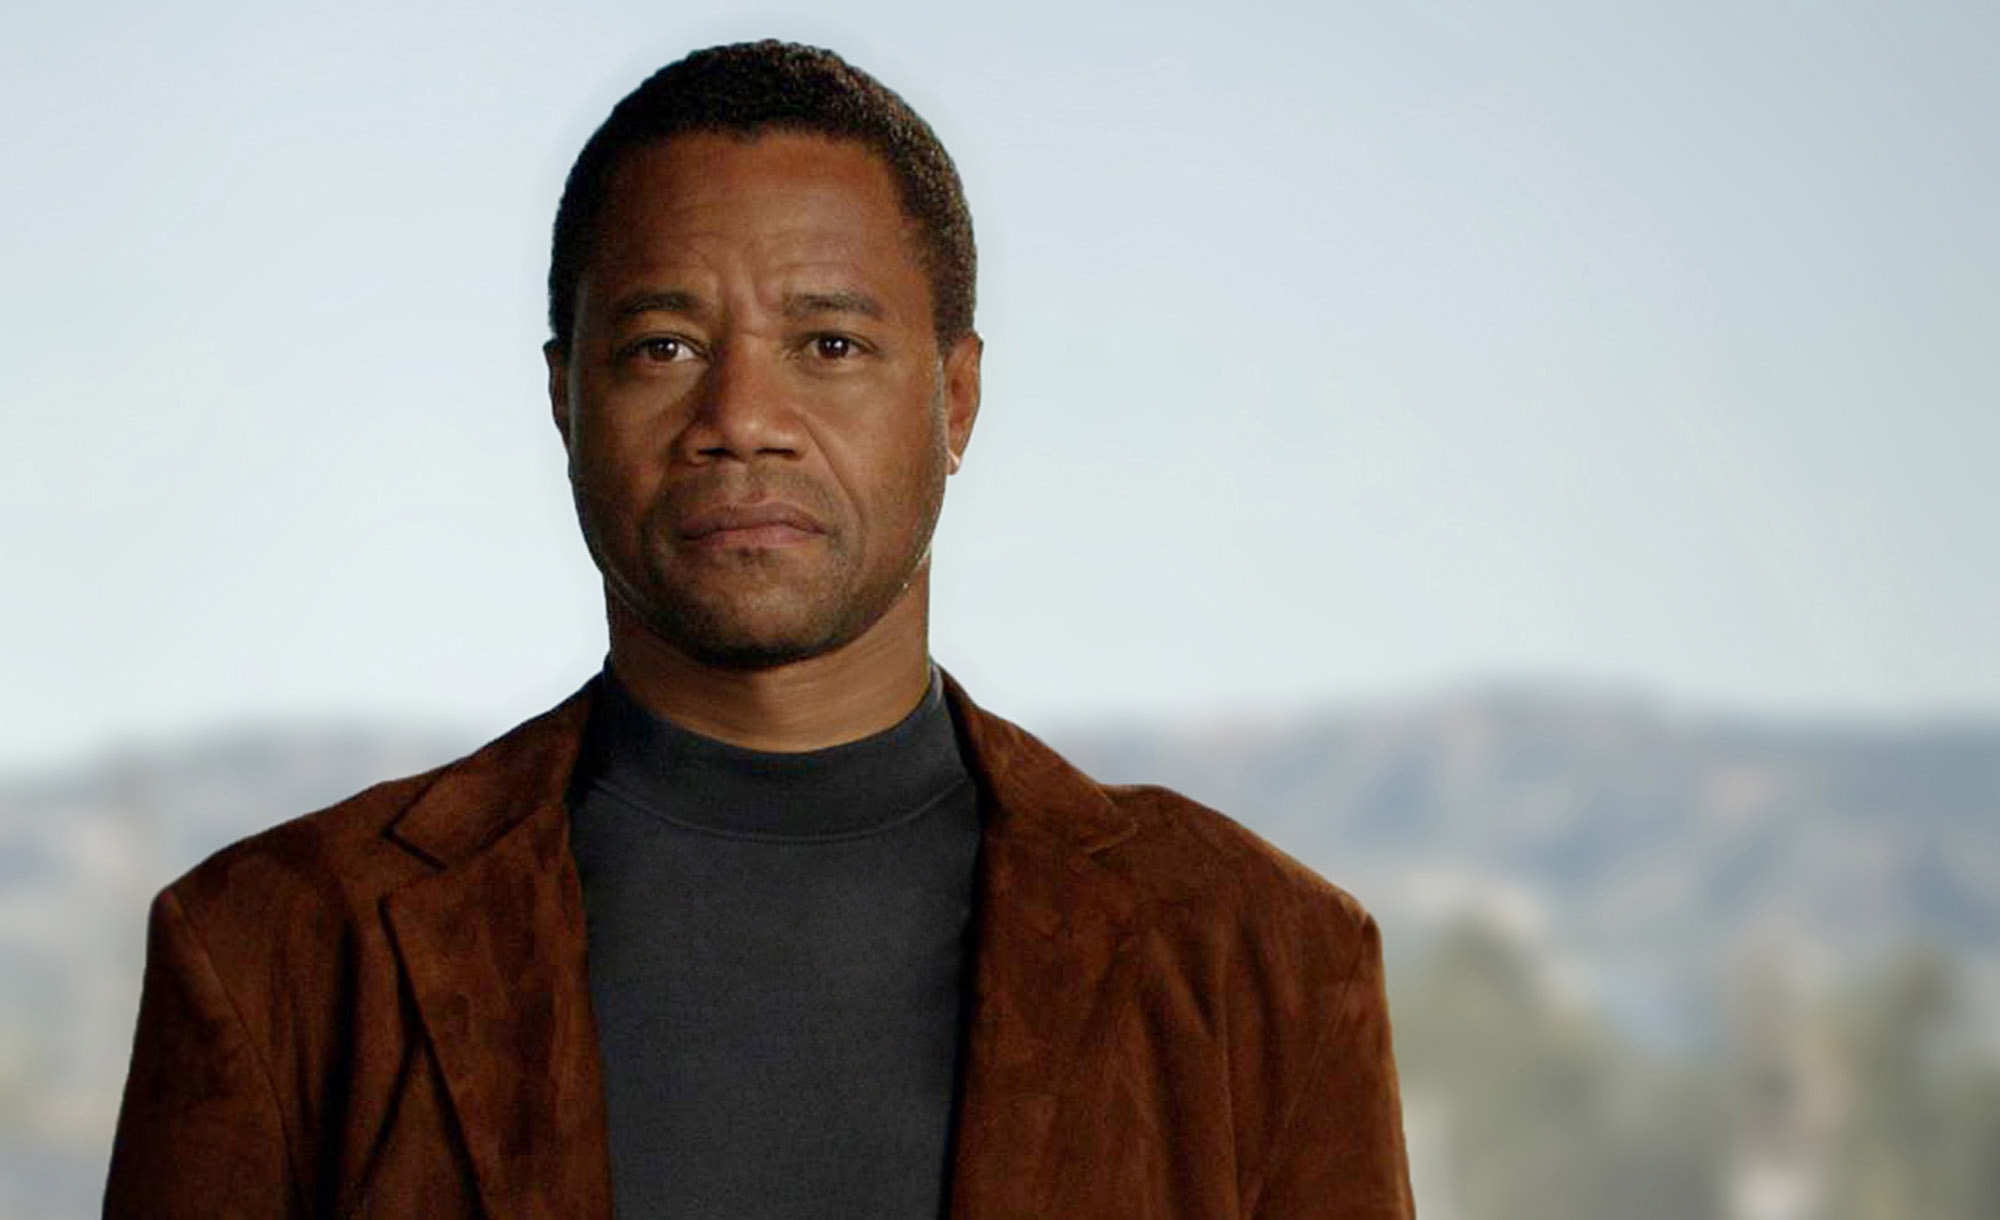 Cuba Gooding Jr. widescreen wallpapers